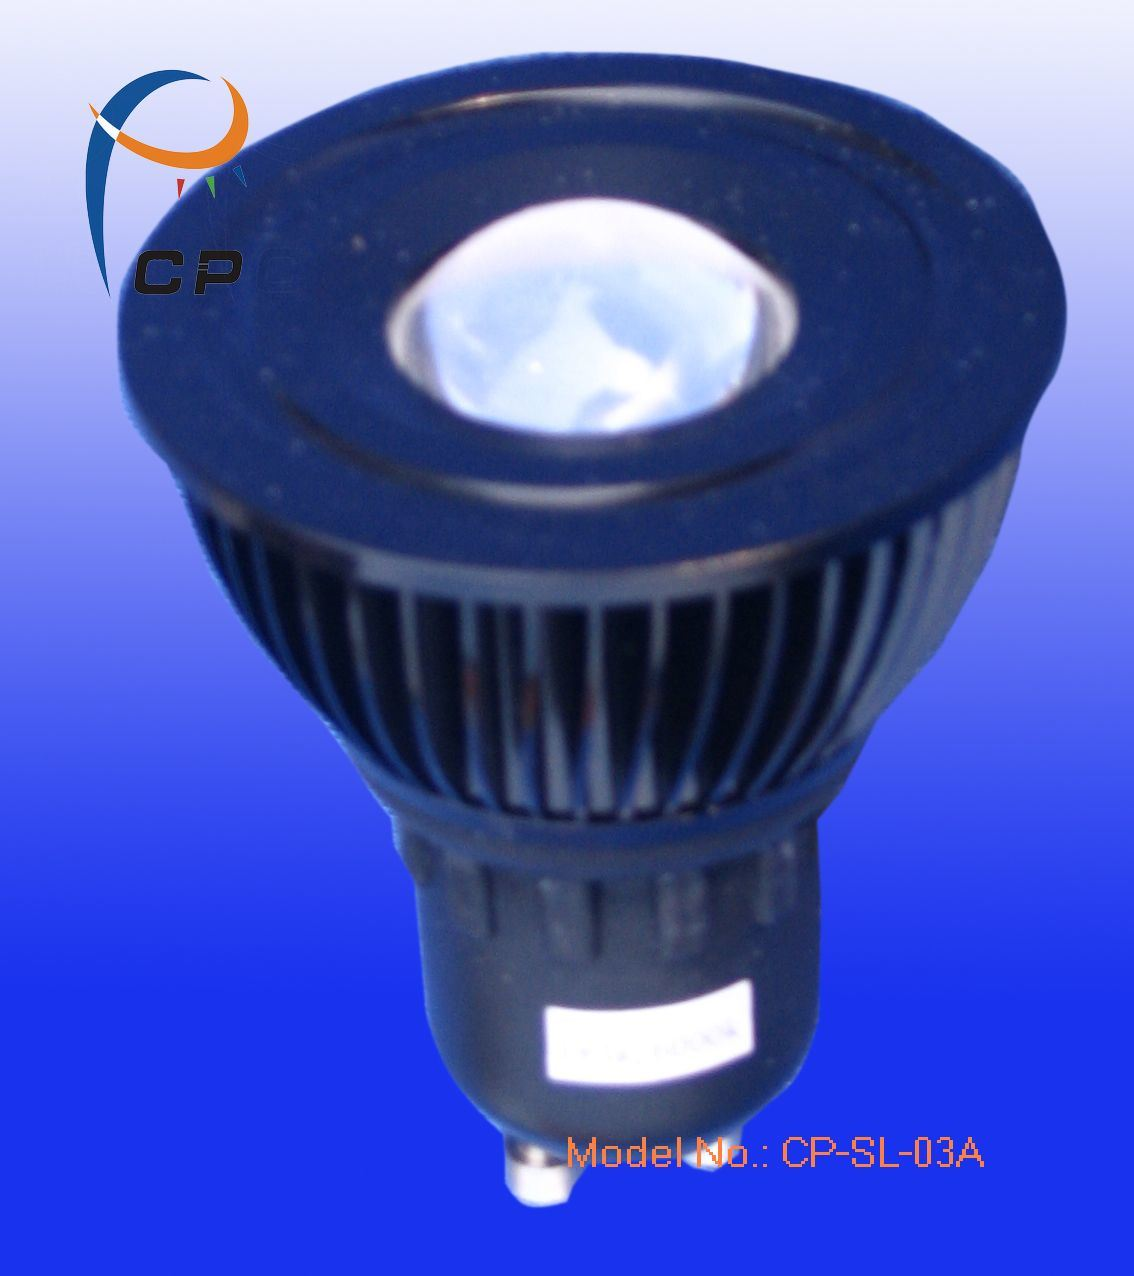 Led Ceiling Lights Made In China : China led ceiling spot light